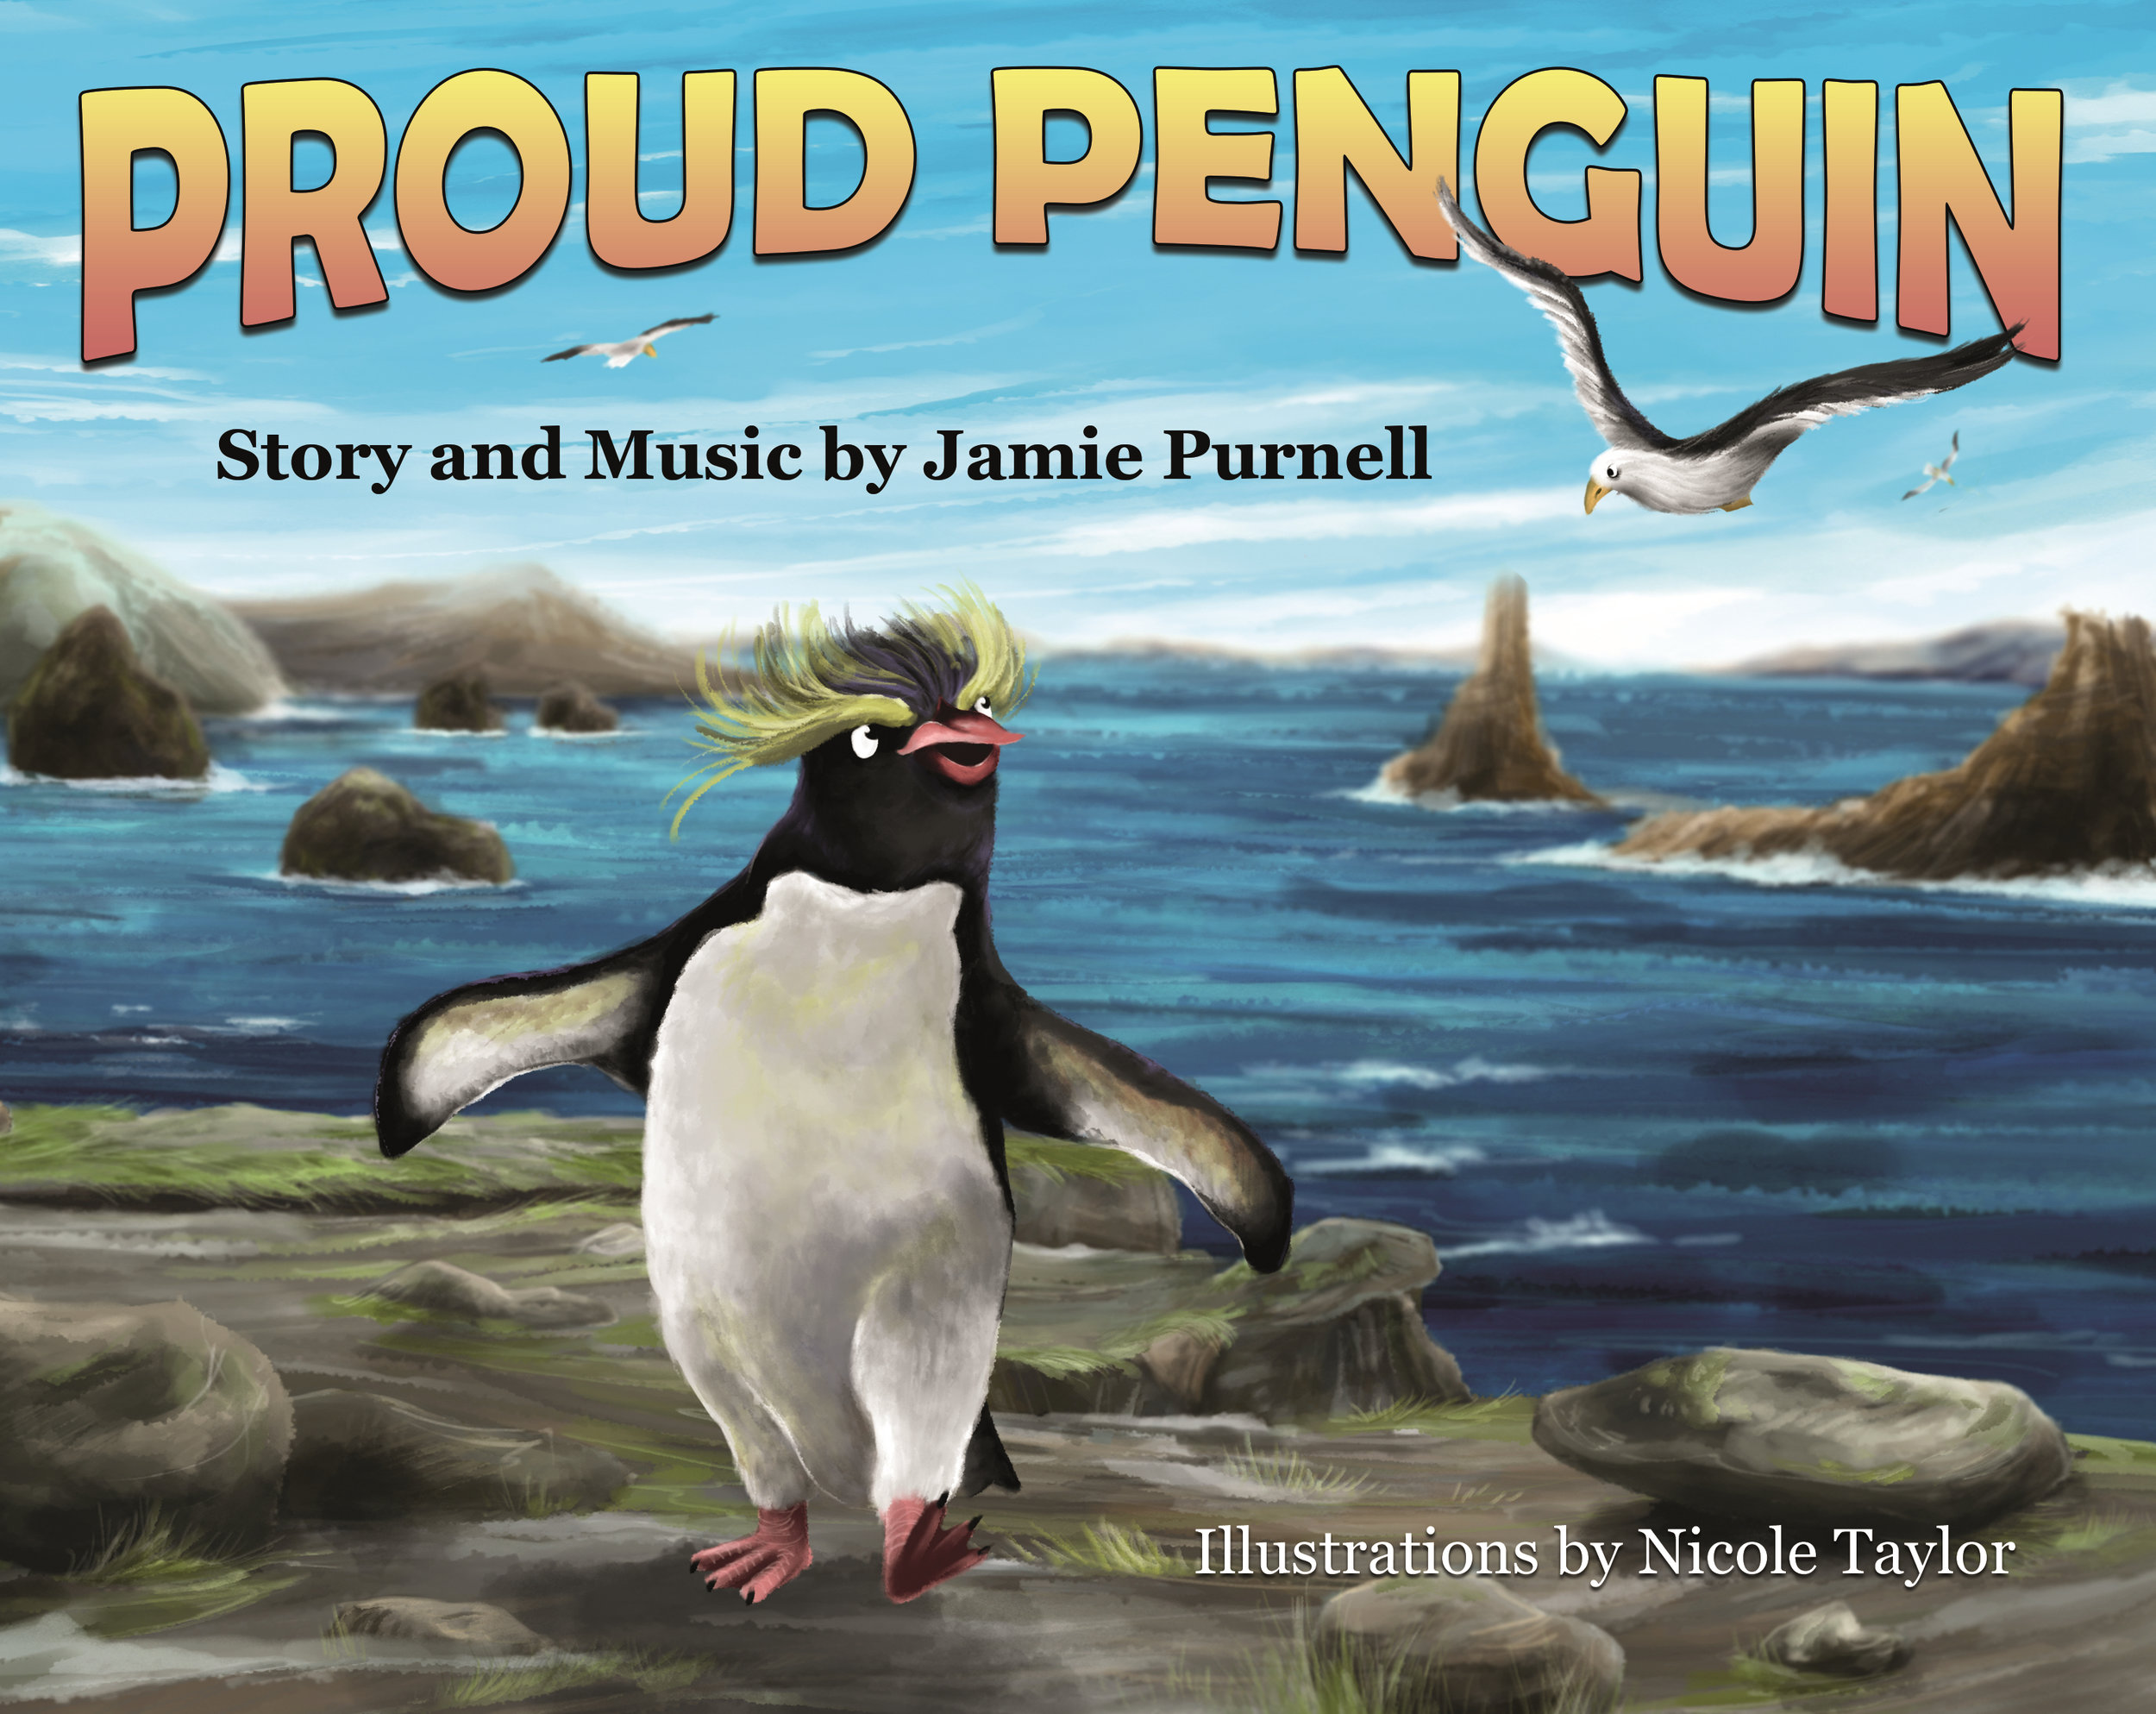 Proud PenguinAvailable Now!!! - A penguin befriends a seagull and learns a lesson about appreciating himself.BUY NOW